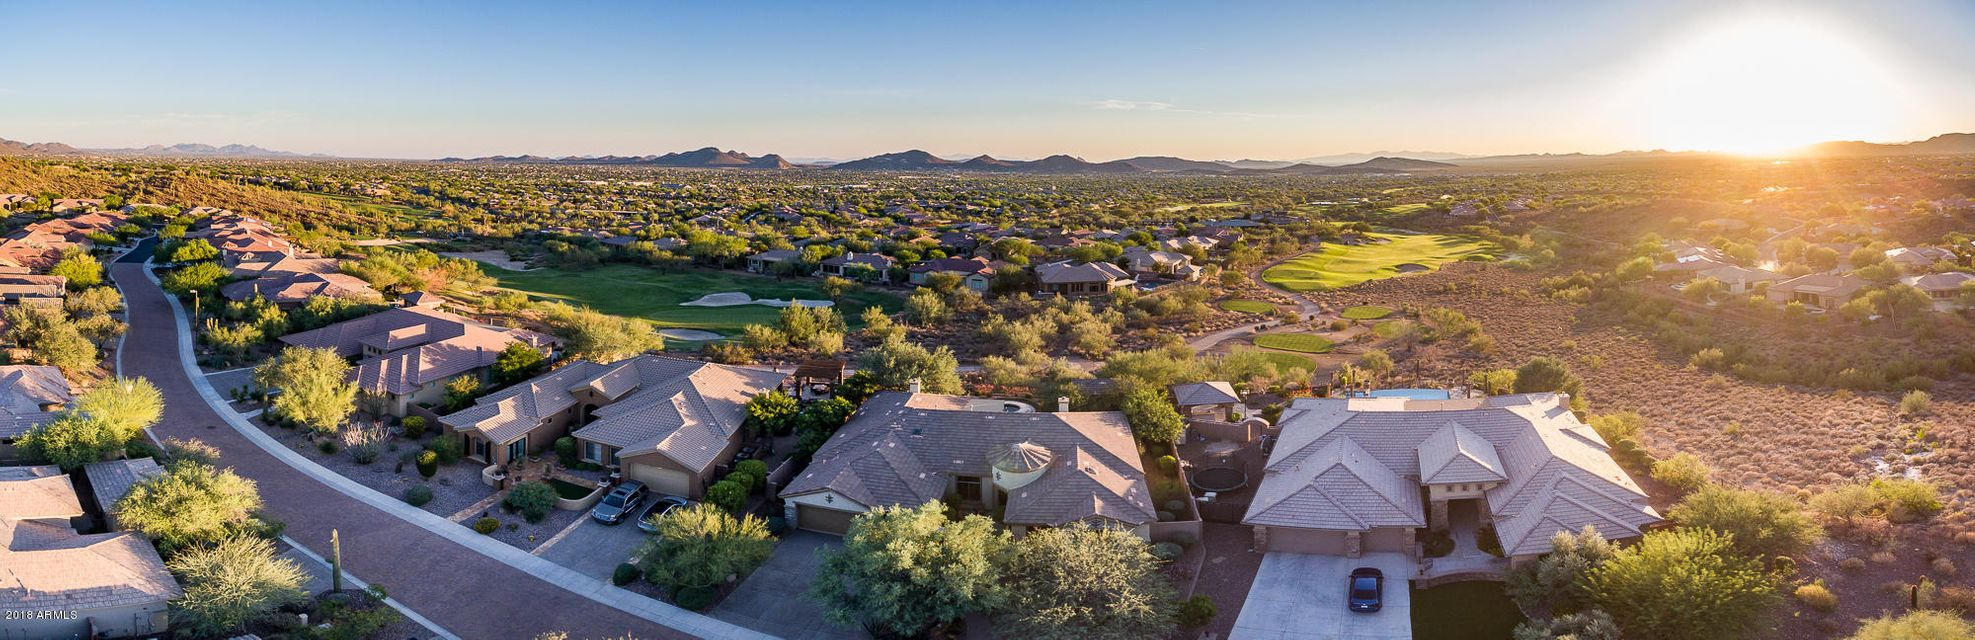 MLS 5825421 2617 W PUMPKIN RIDGE Drive, Anthem, AZ 85086 Anthem AZ Gated